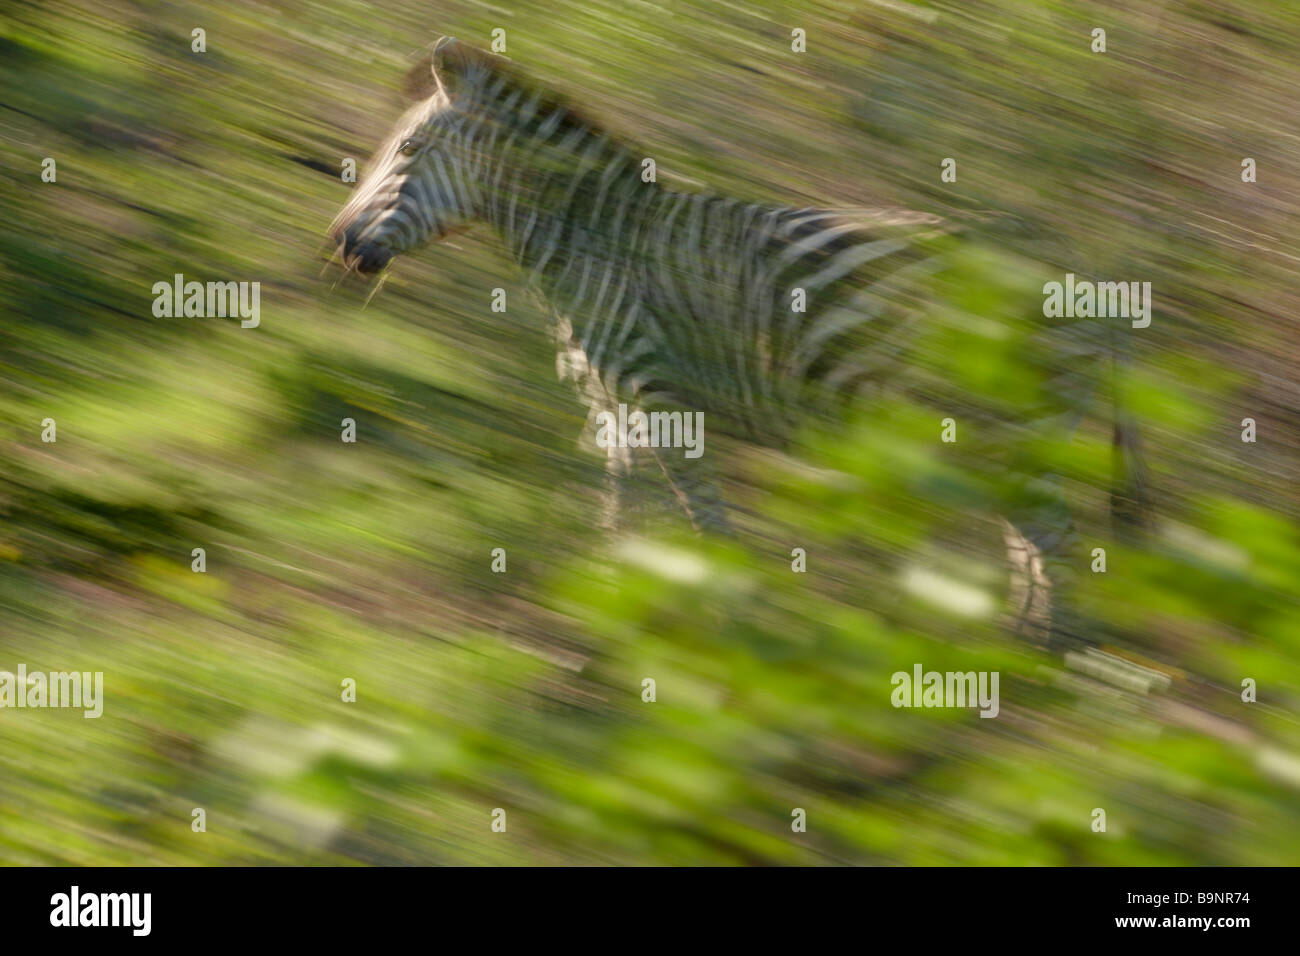 solitary Burchells zebra on the move, Kruger National Park, South Africa - Stock Image